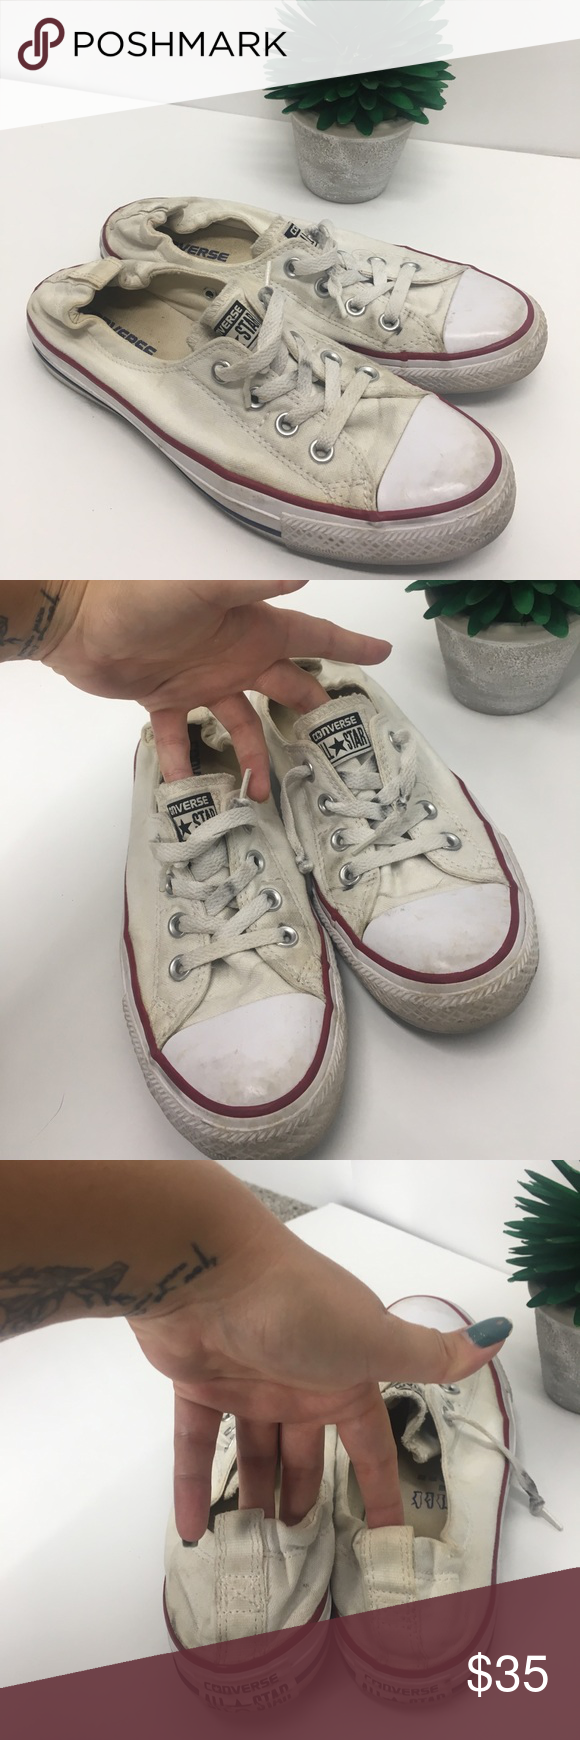 d8d97282002c Converse white shoreline low sneakers Great condition! Just dirty and need  cleaned. Shoreline low style. Will clean before shipment for a full price  sale.